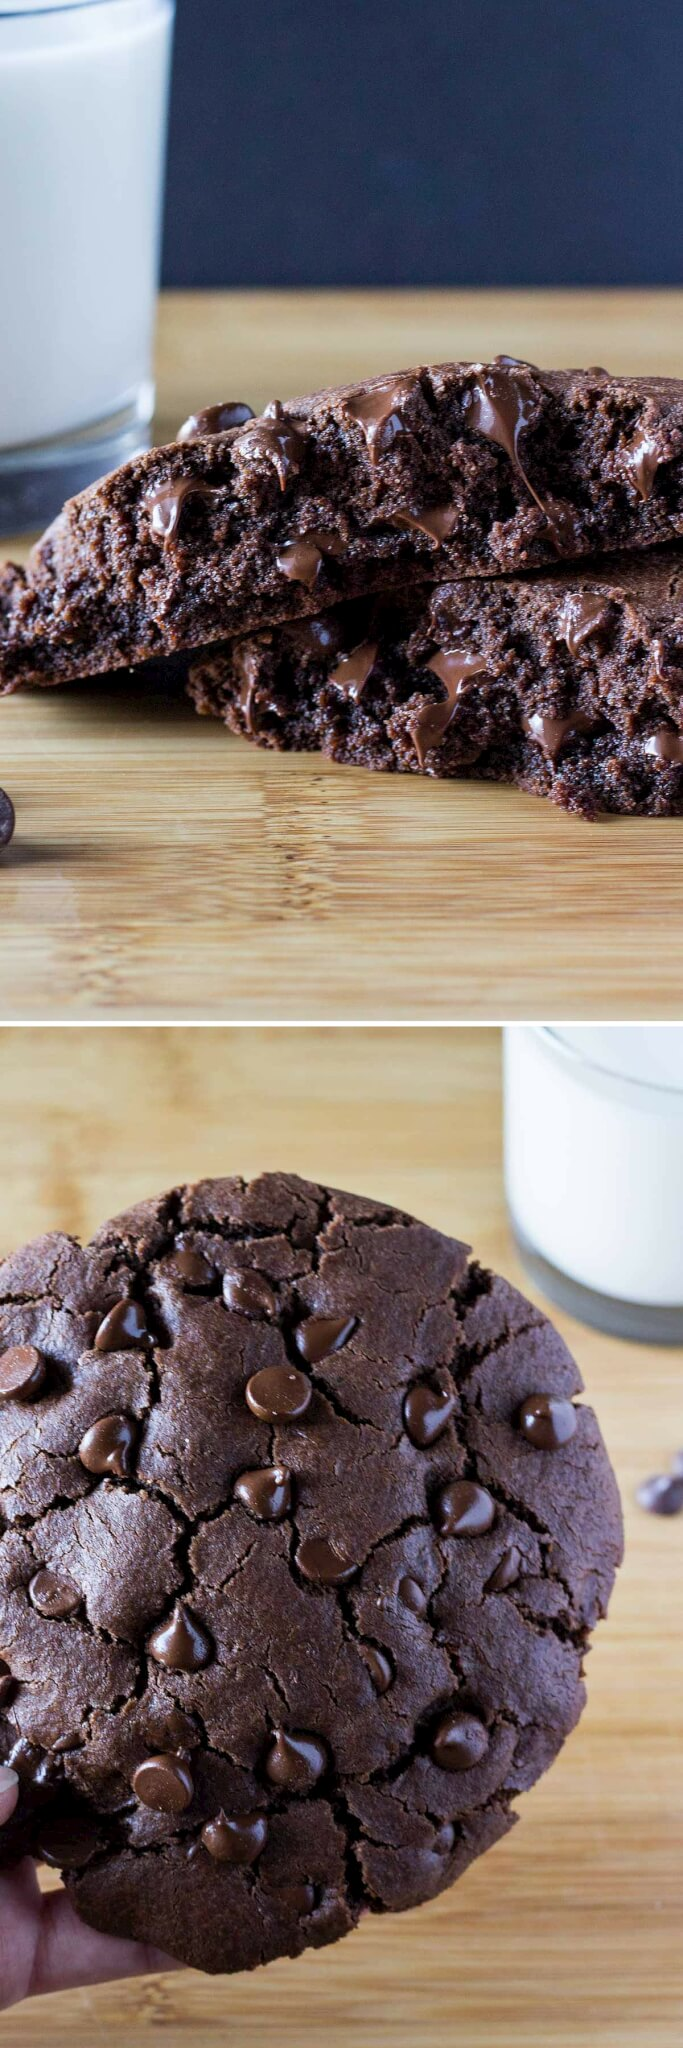 Giant Double Chocolate Cookie for One - Just so Tasty